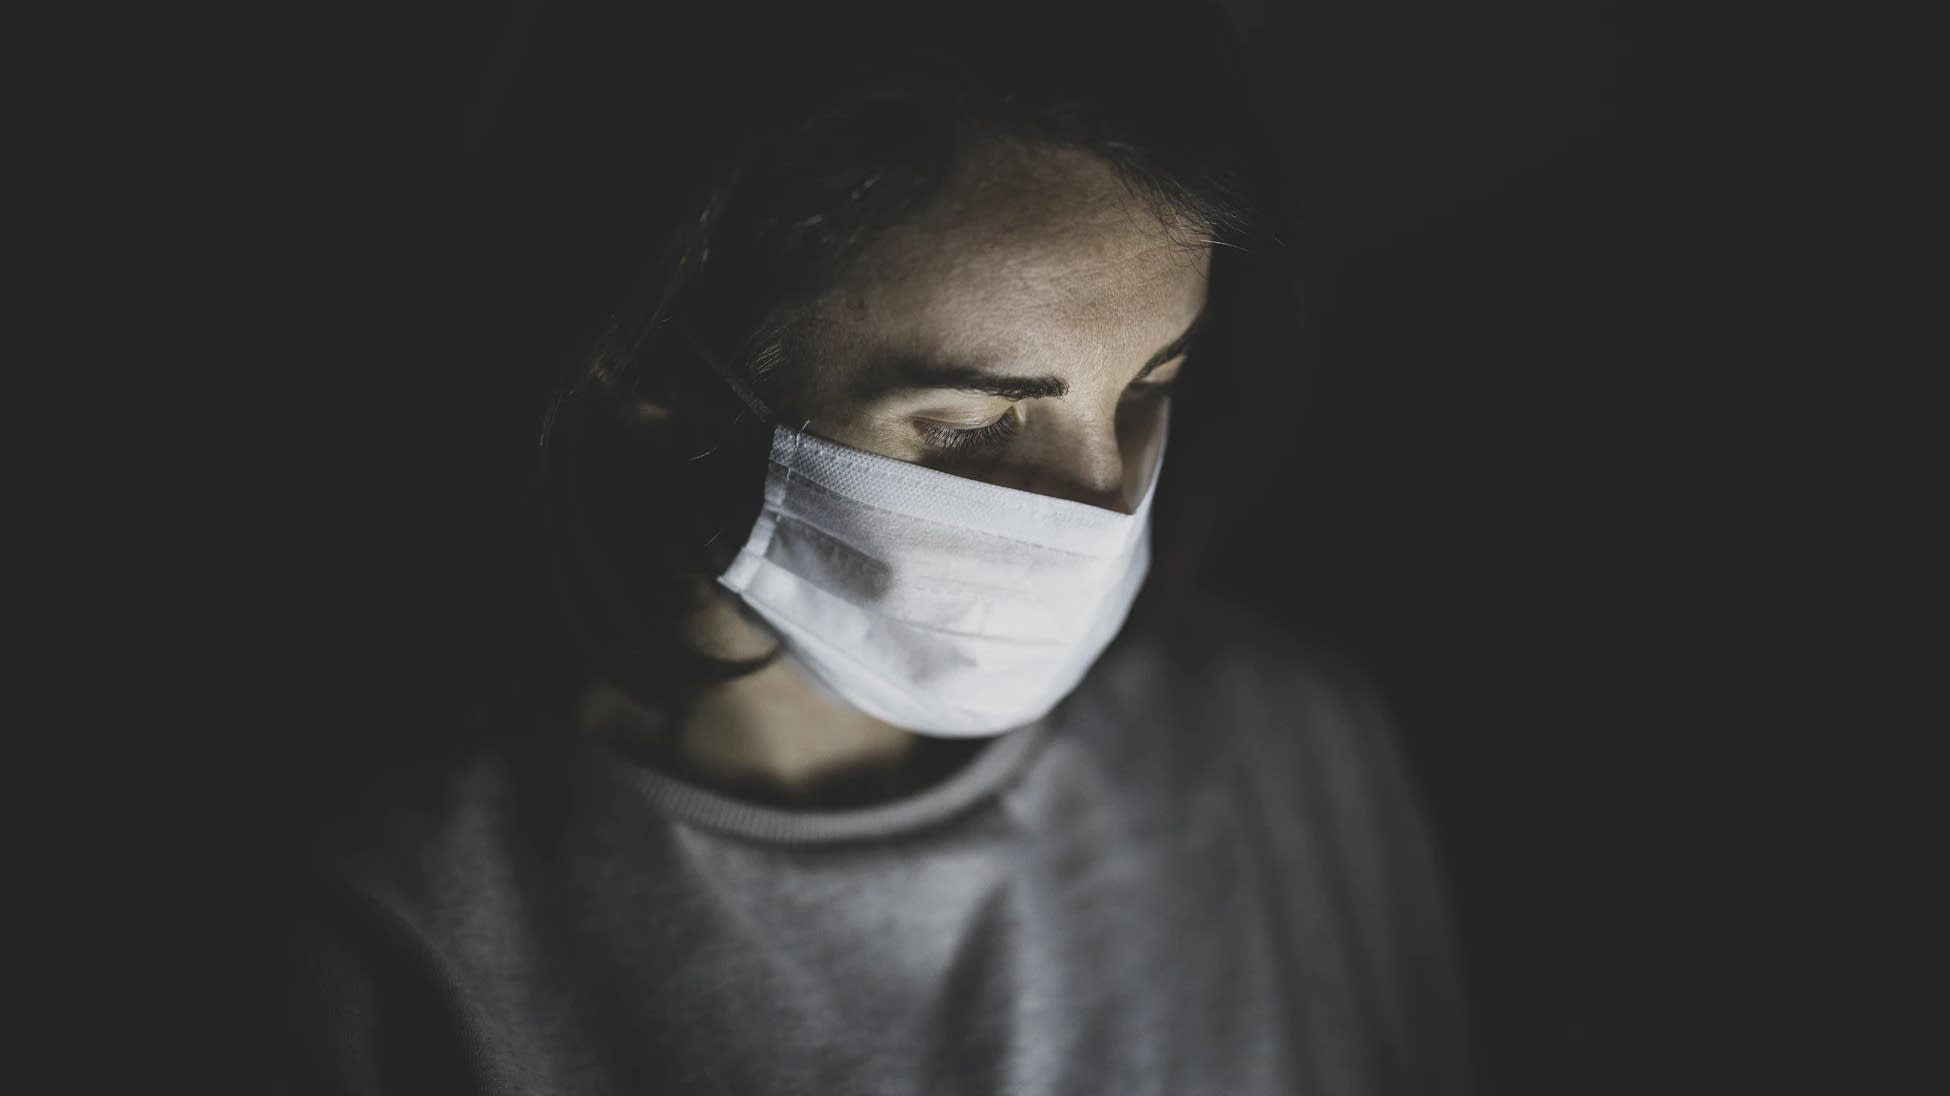 A woman wears a face mask in the dark.